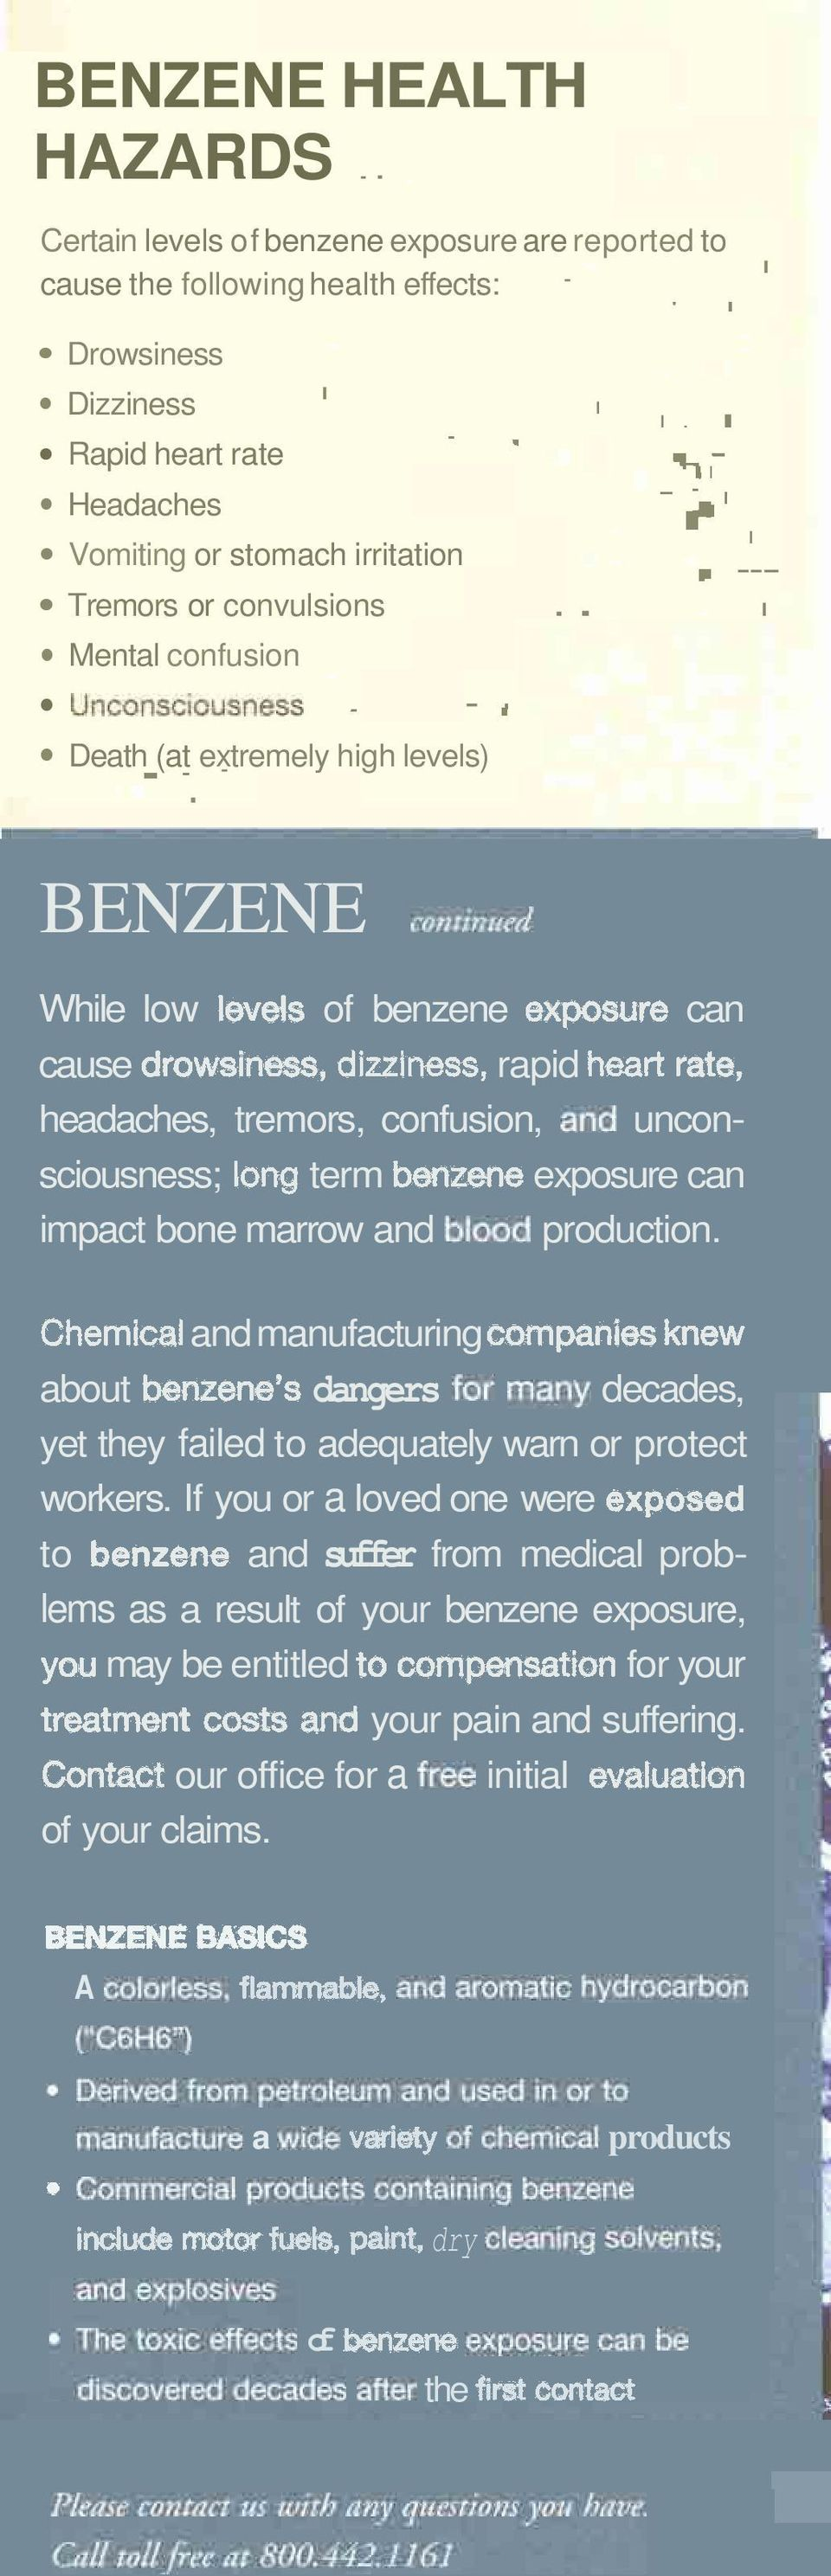 .. i' r BENZENE C O ~ ~ While low wds of benzene expowre can cause drowsiness, dinlness, rapid heart rate, headaches, tremors, confusion, and unconsciousness; long term benzene exposure can impact